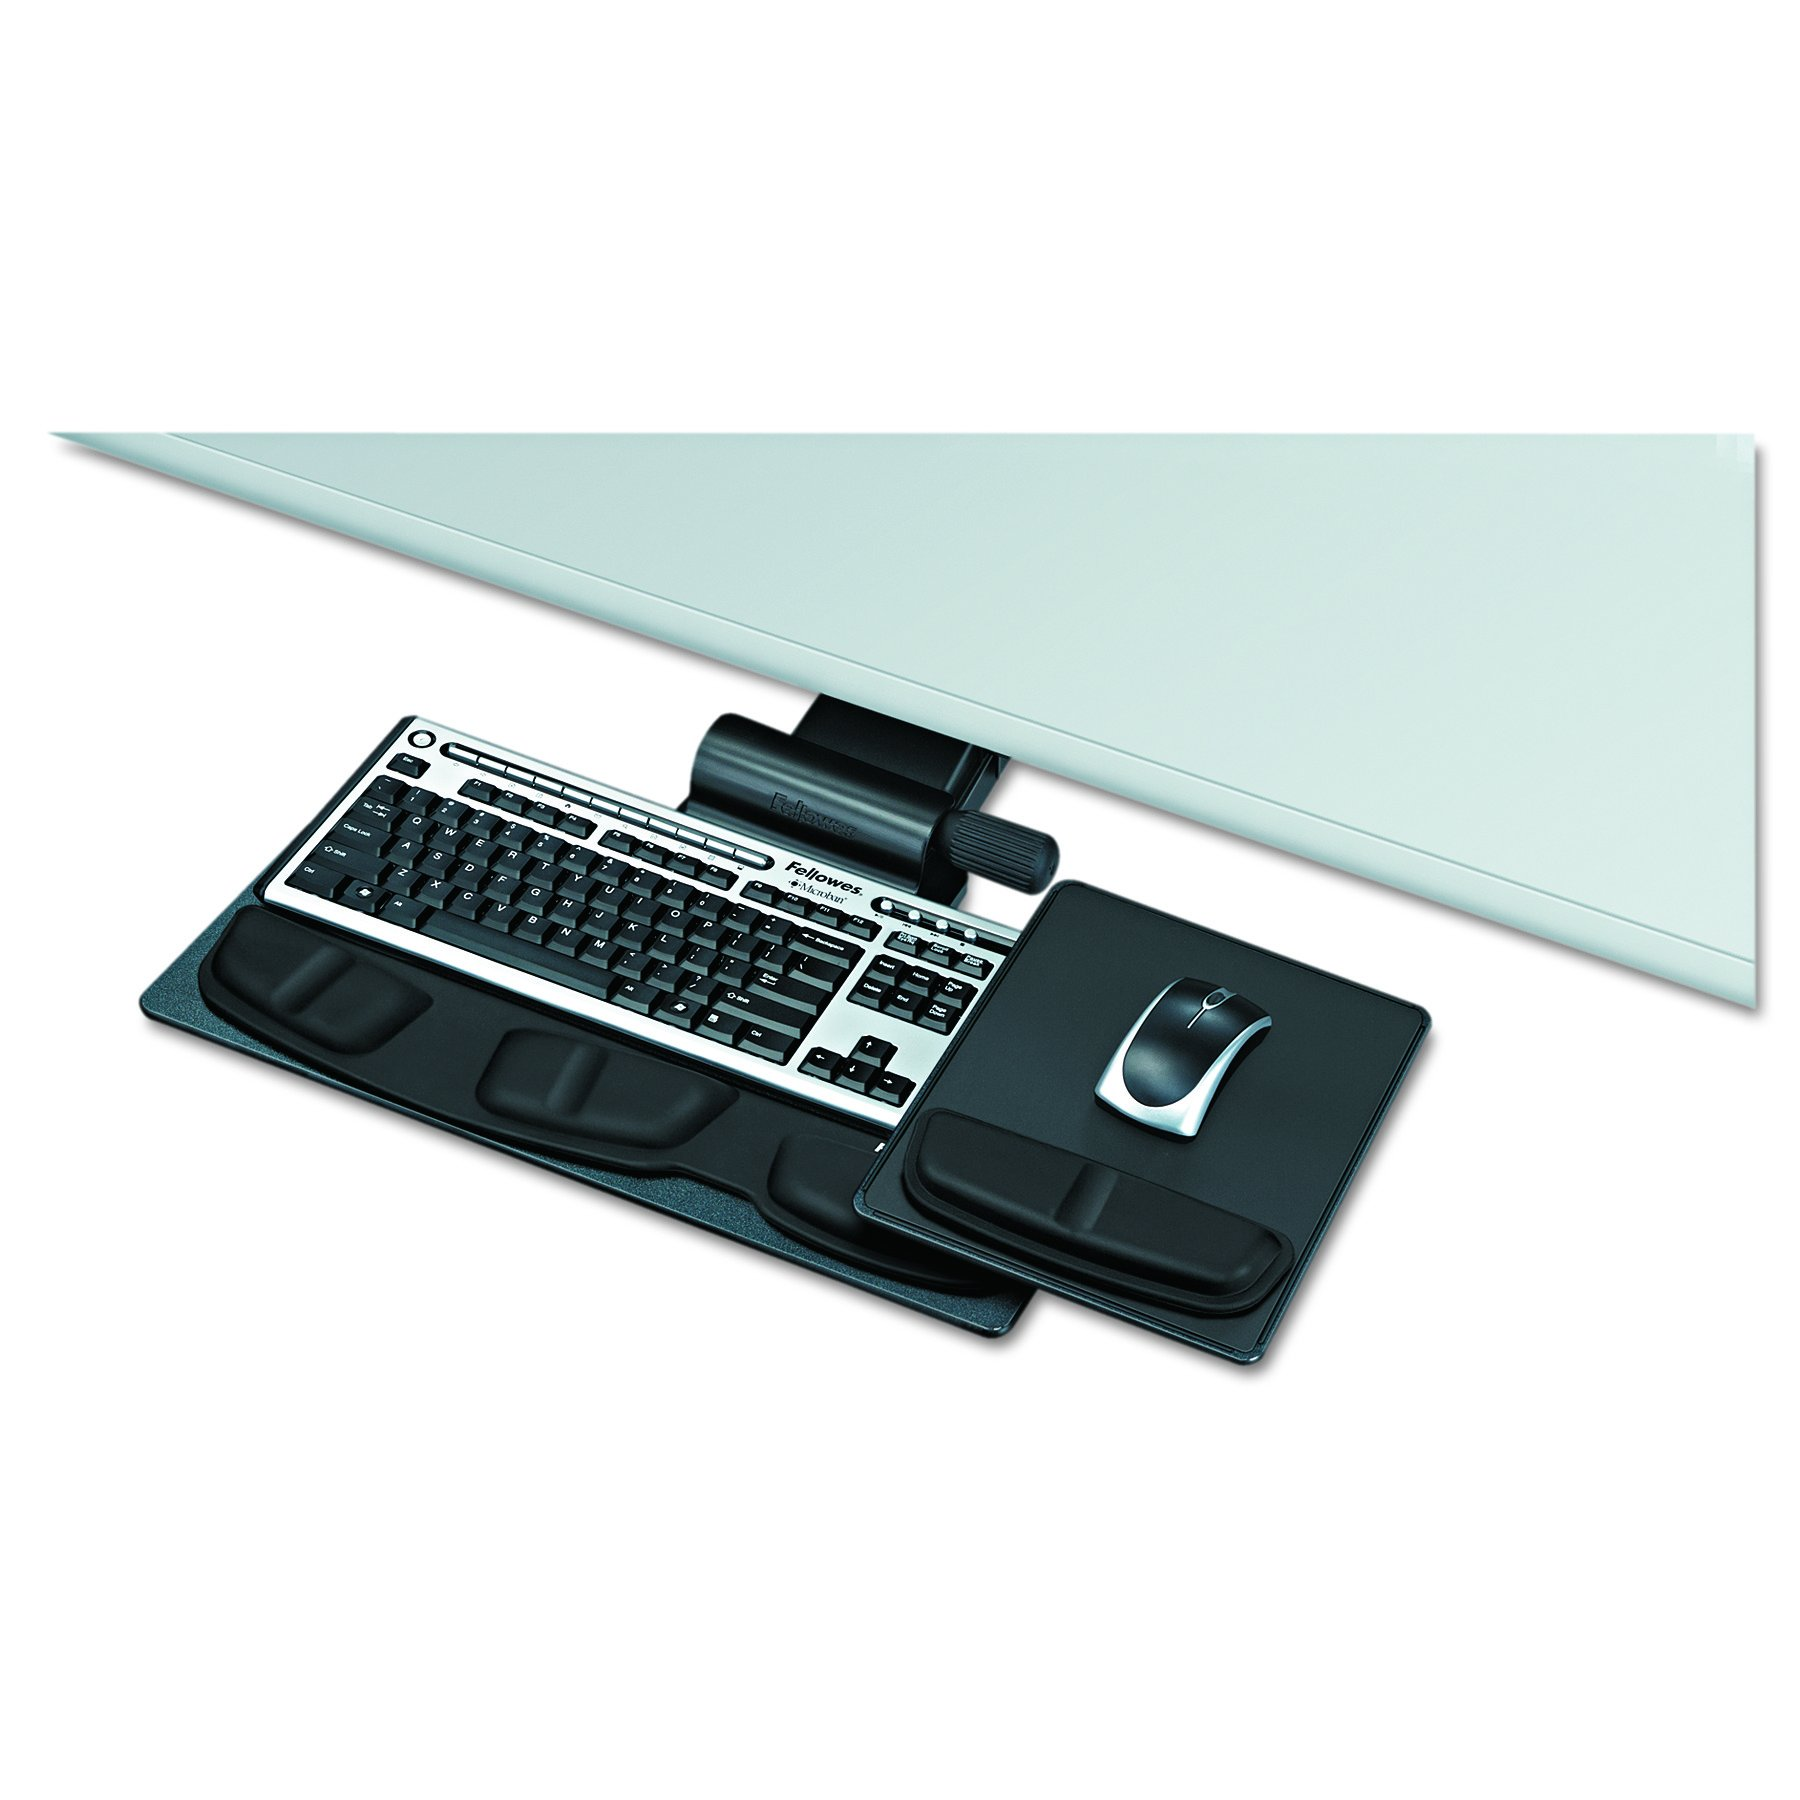 Fellowes 8036001 Professional Premier Series Adjustable Keyboard Tray, 19w x 10-5/8d, Black by Fellowes (Image #2)